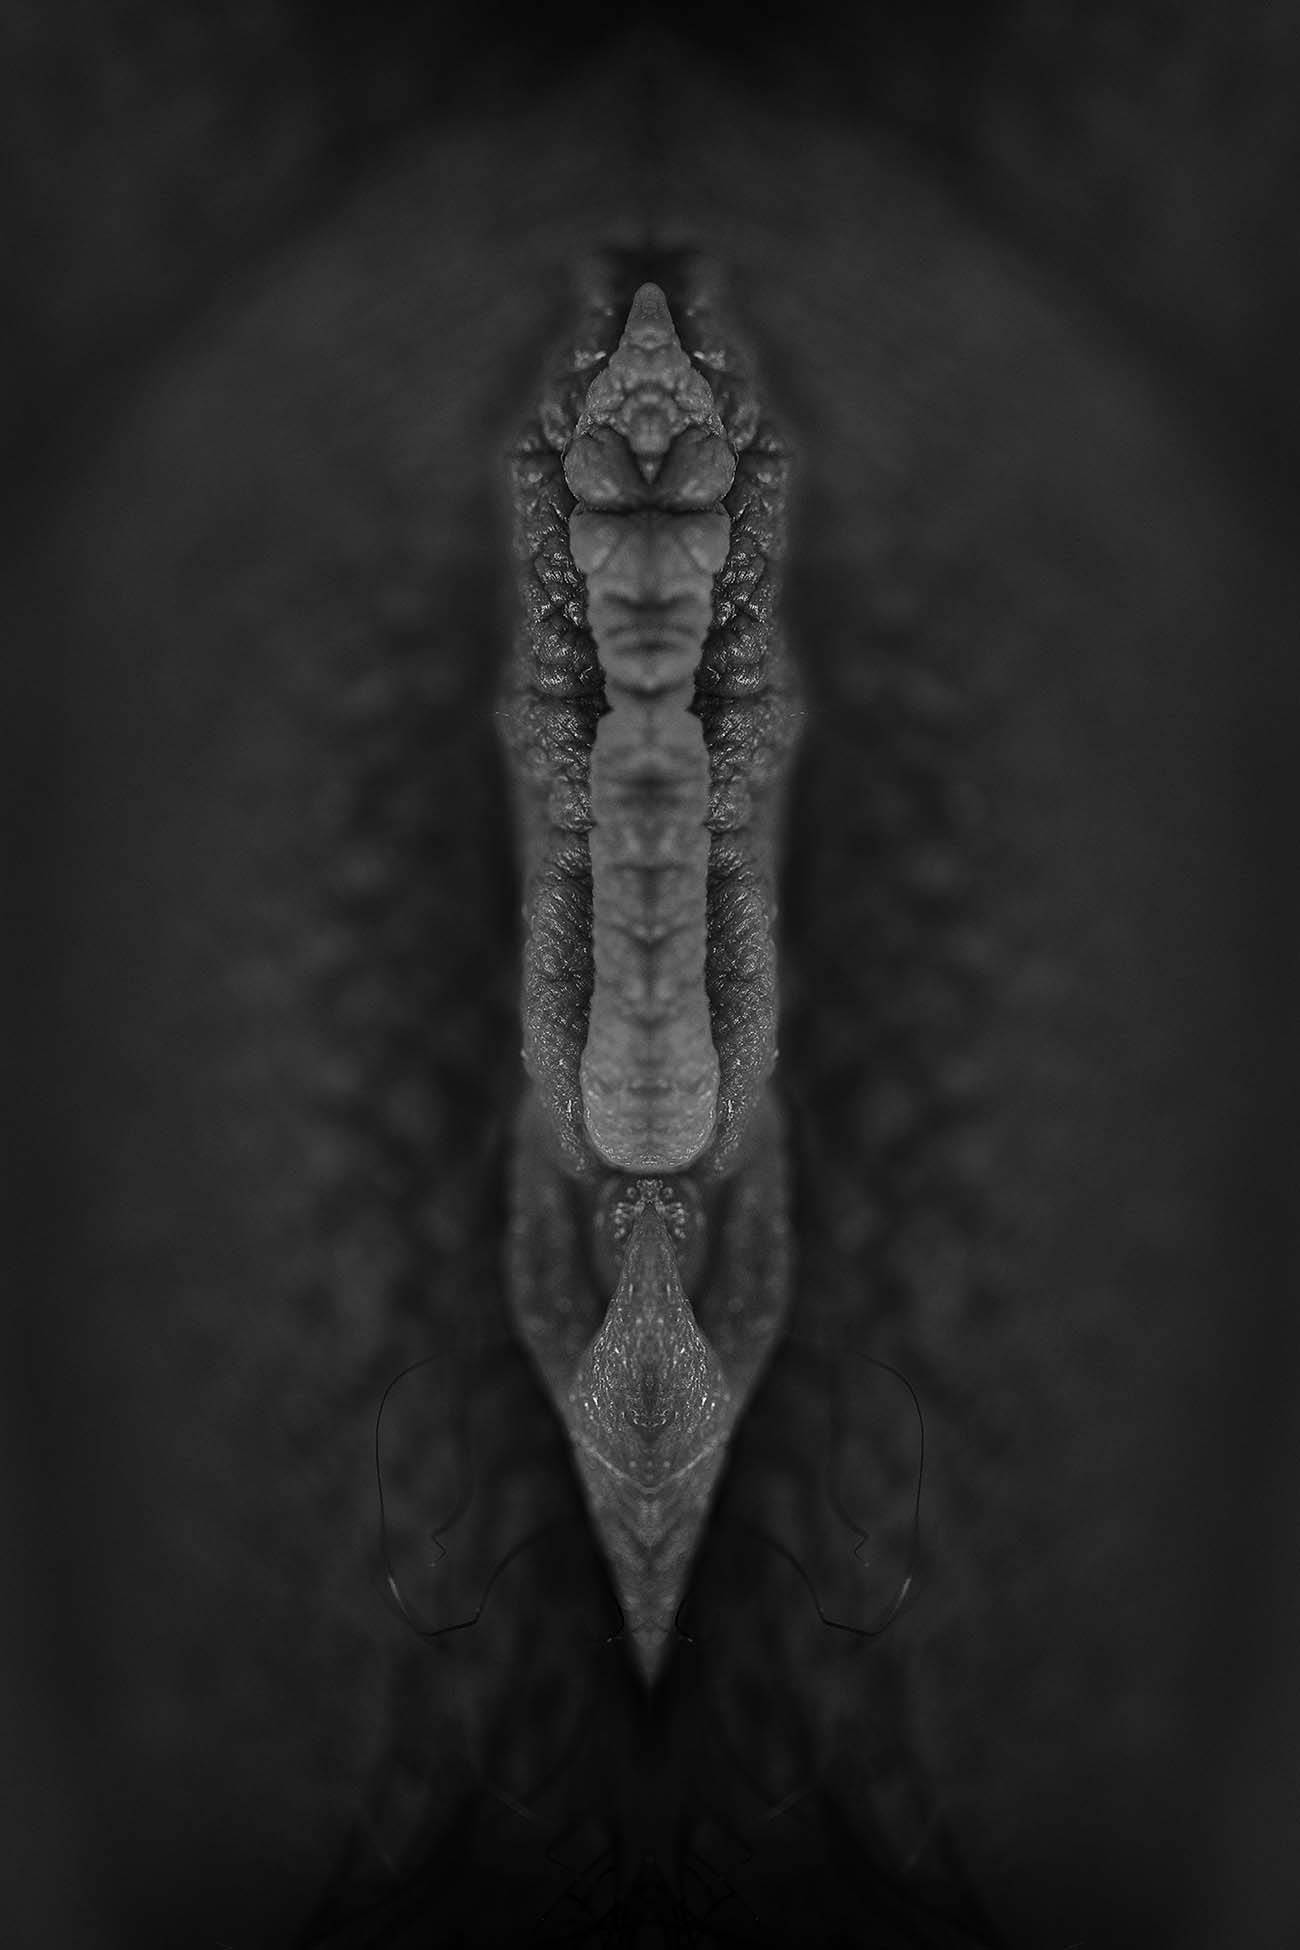 Totem N°14 - Photographie Paul-Louis LEGER, Photographe, Marseille